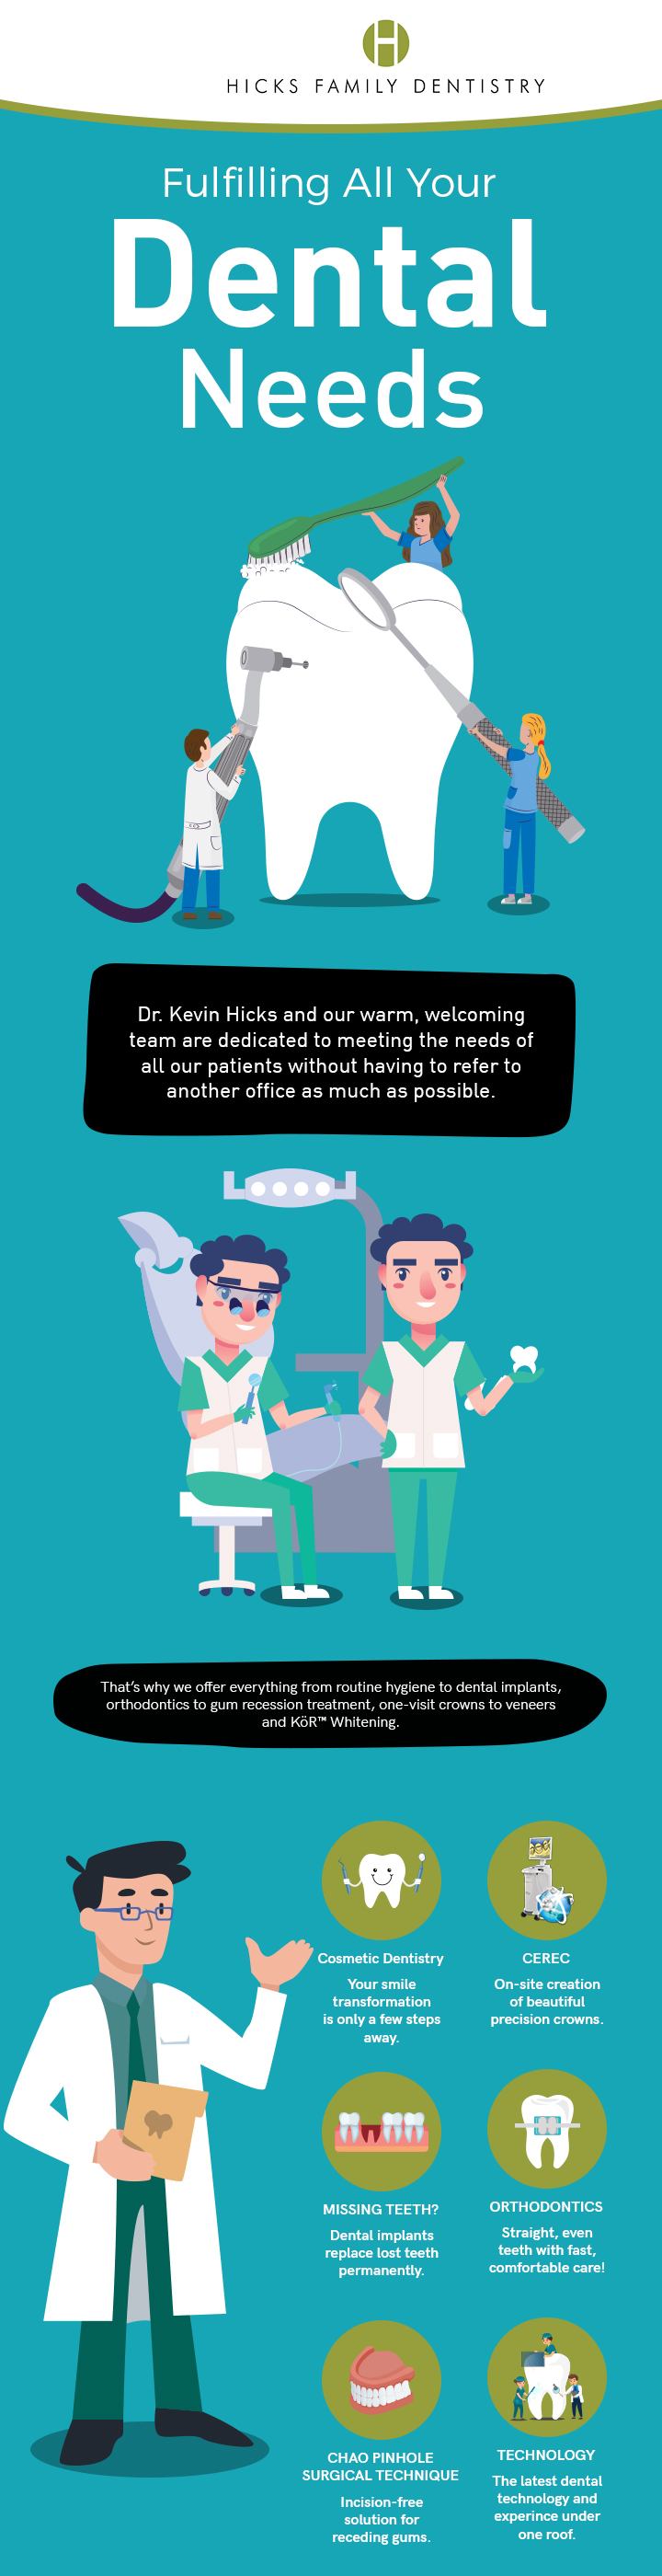 Visit Hicks Family Dentistry in Lititz, PA for all Your Dental Needs